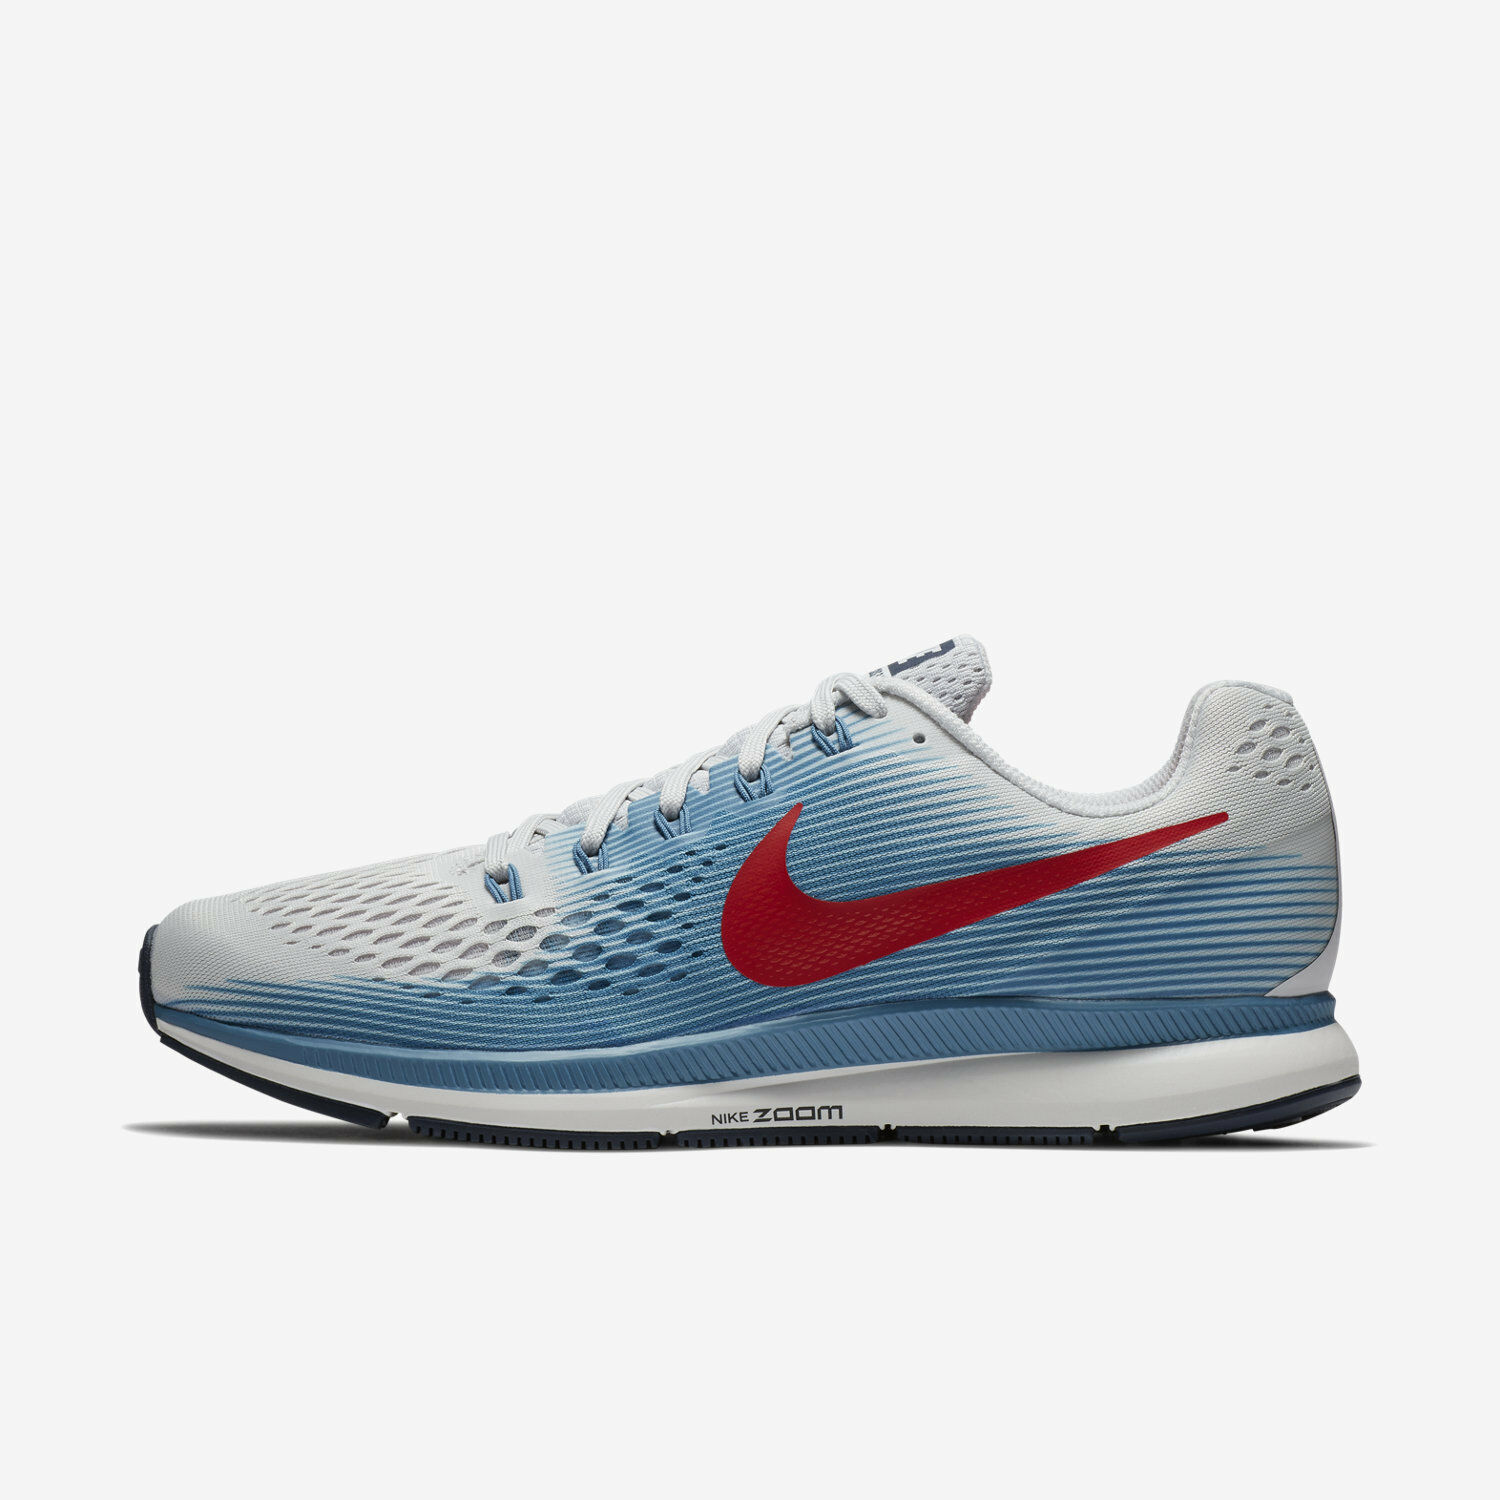 Mns Nike Air Zoom Pegasus 34 Sz 7.5-13 Grey Univ Red 880555-016 FREE SHIPPING